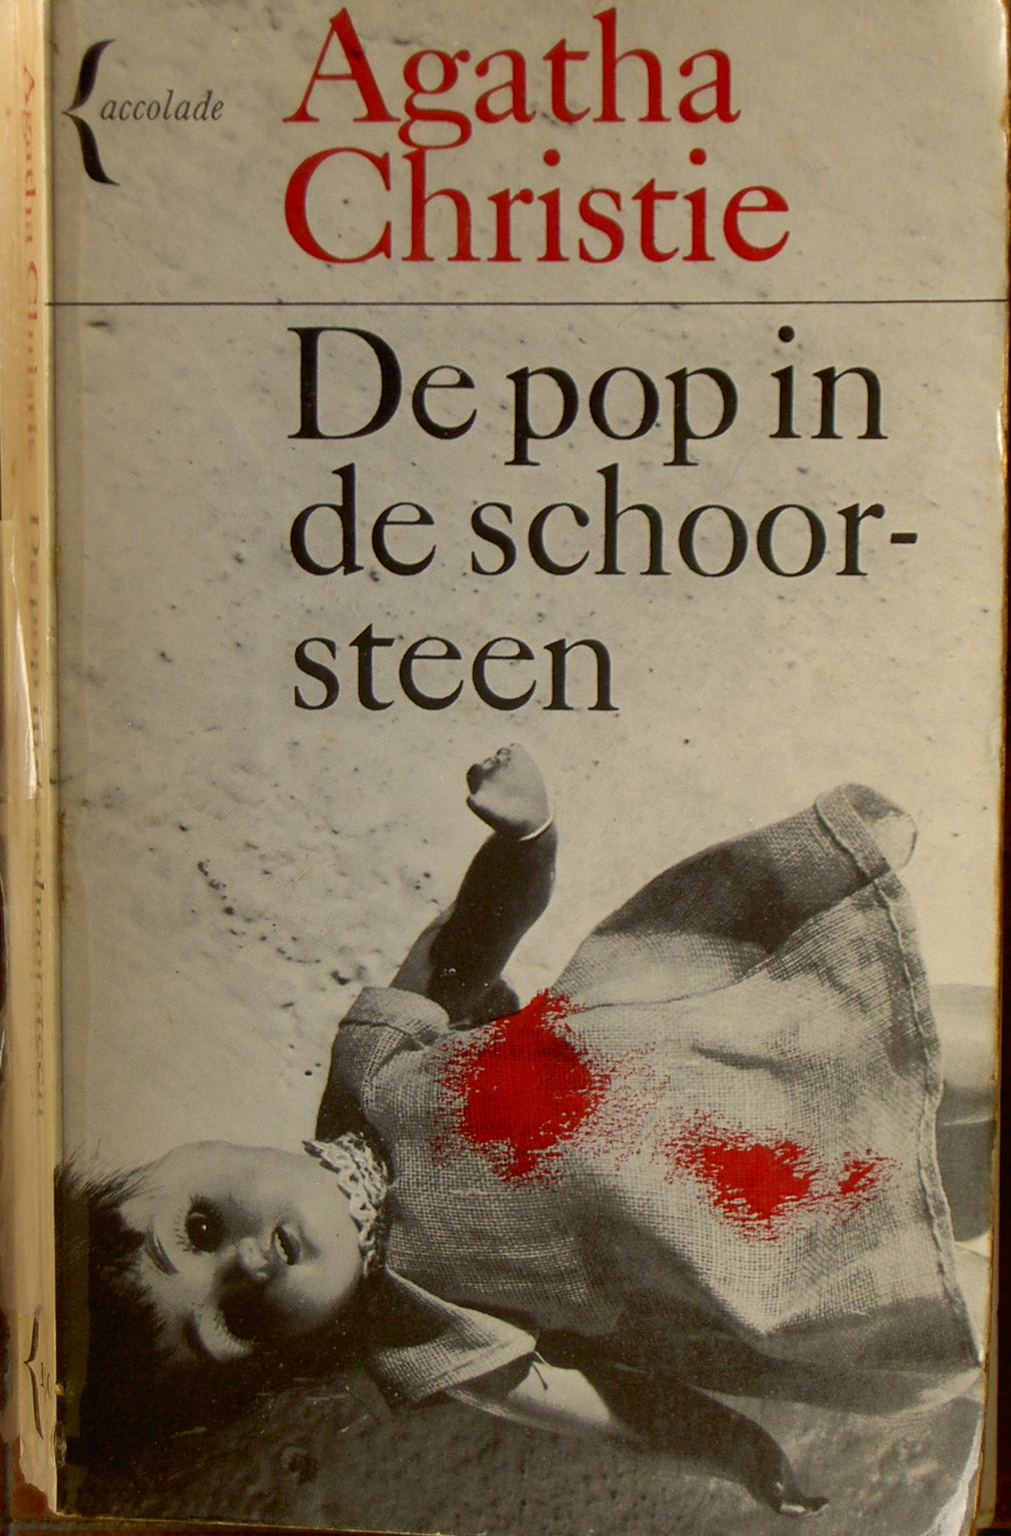 De pop in de schoors...